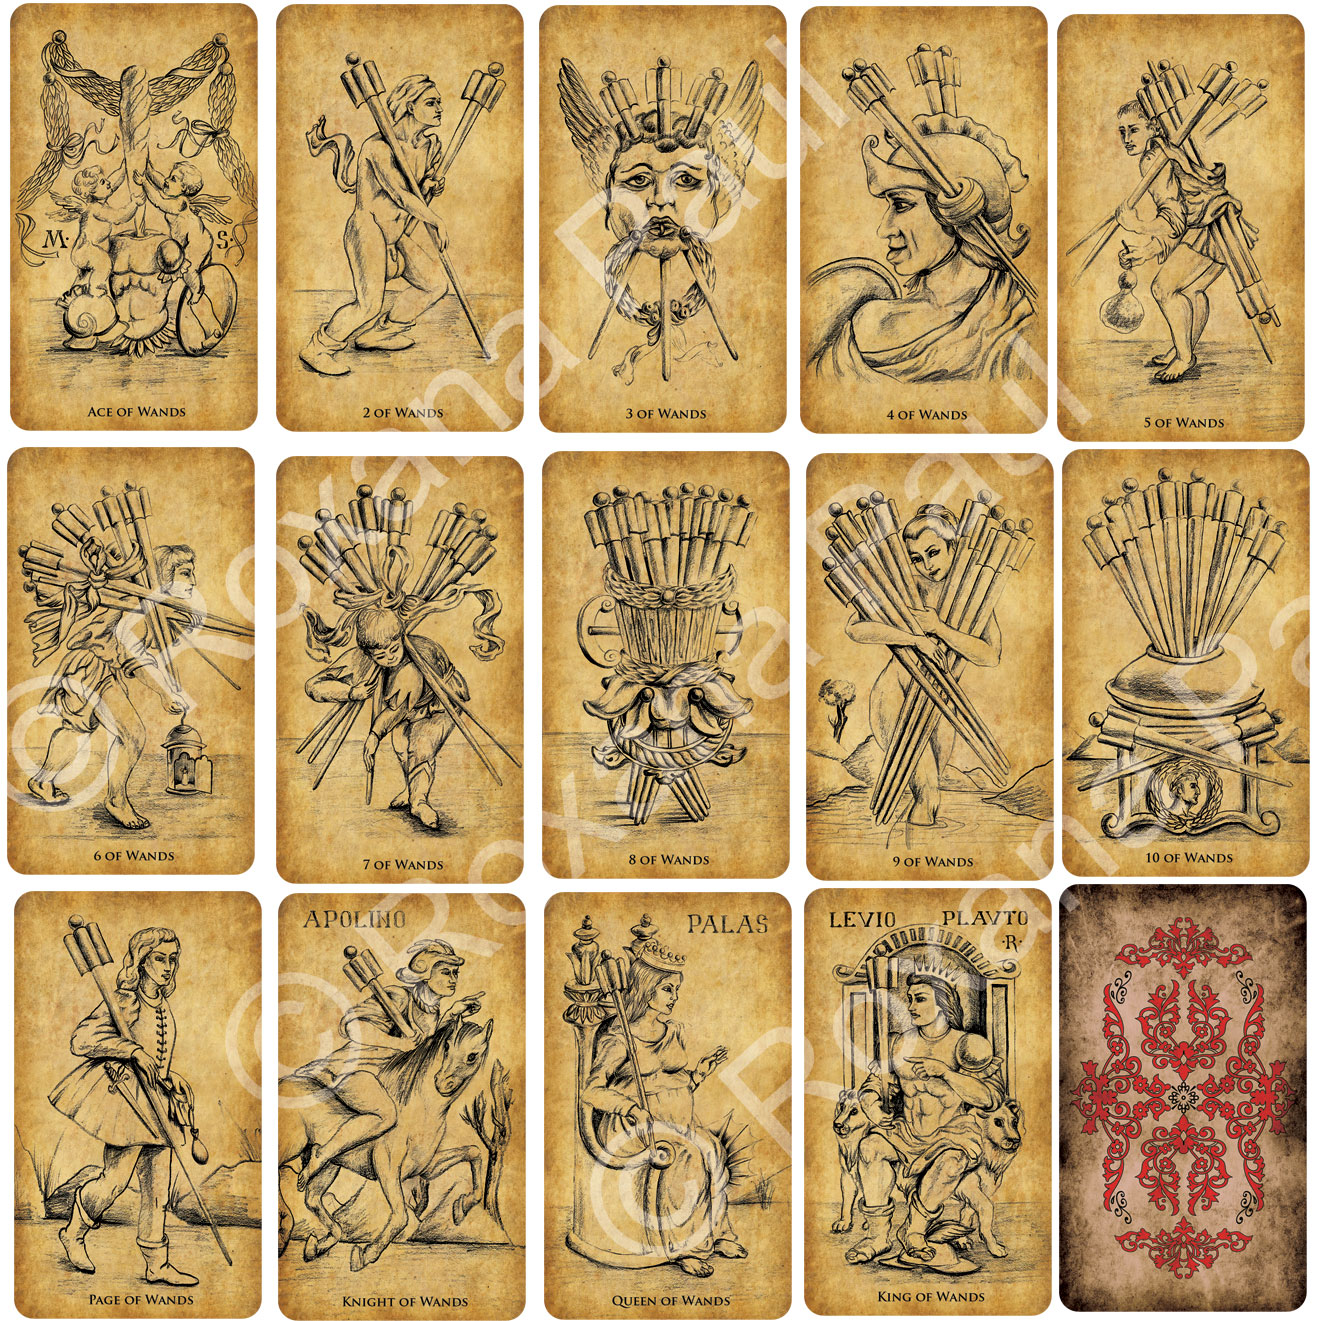 Contents: Standard Sized Tarot deck, 2.75 x 4.75 in. (70 mm x 120 mm) - 78 cards  Card stock: 330gsm (linen finish) Card Language: English Card Back: Reversible Packaging: Two pieces sturdy box (gloss finish)